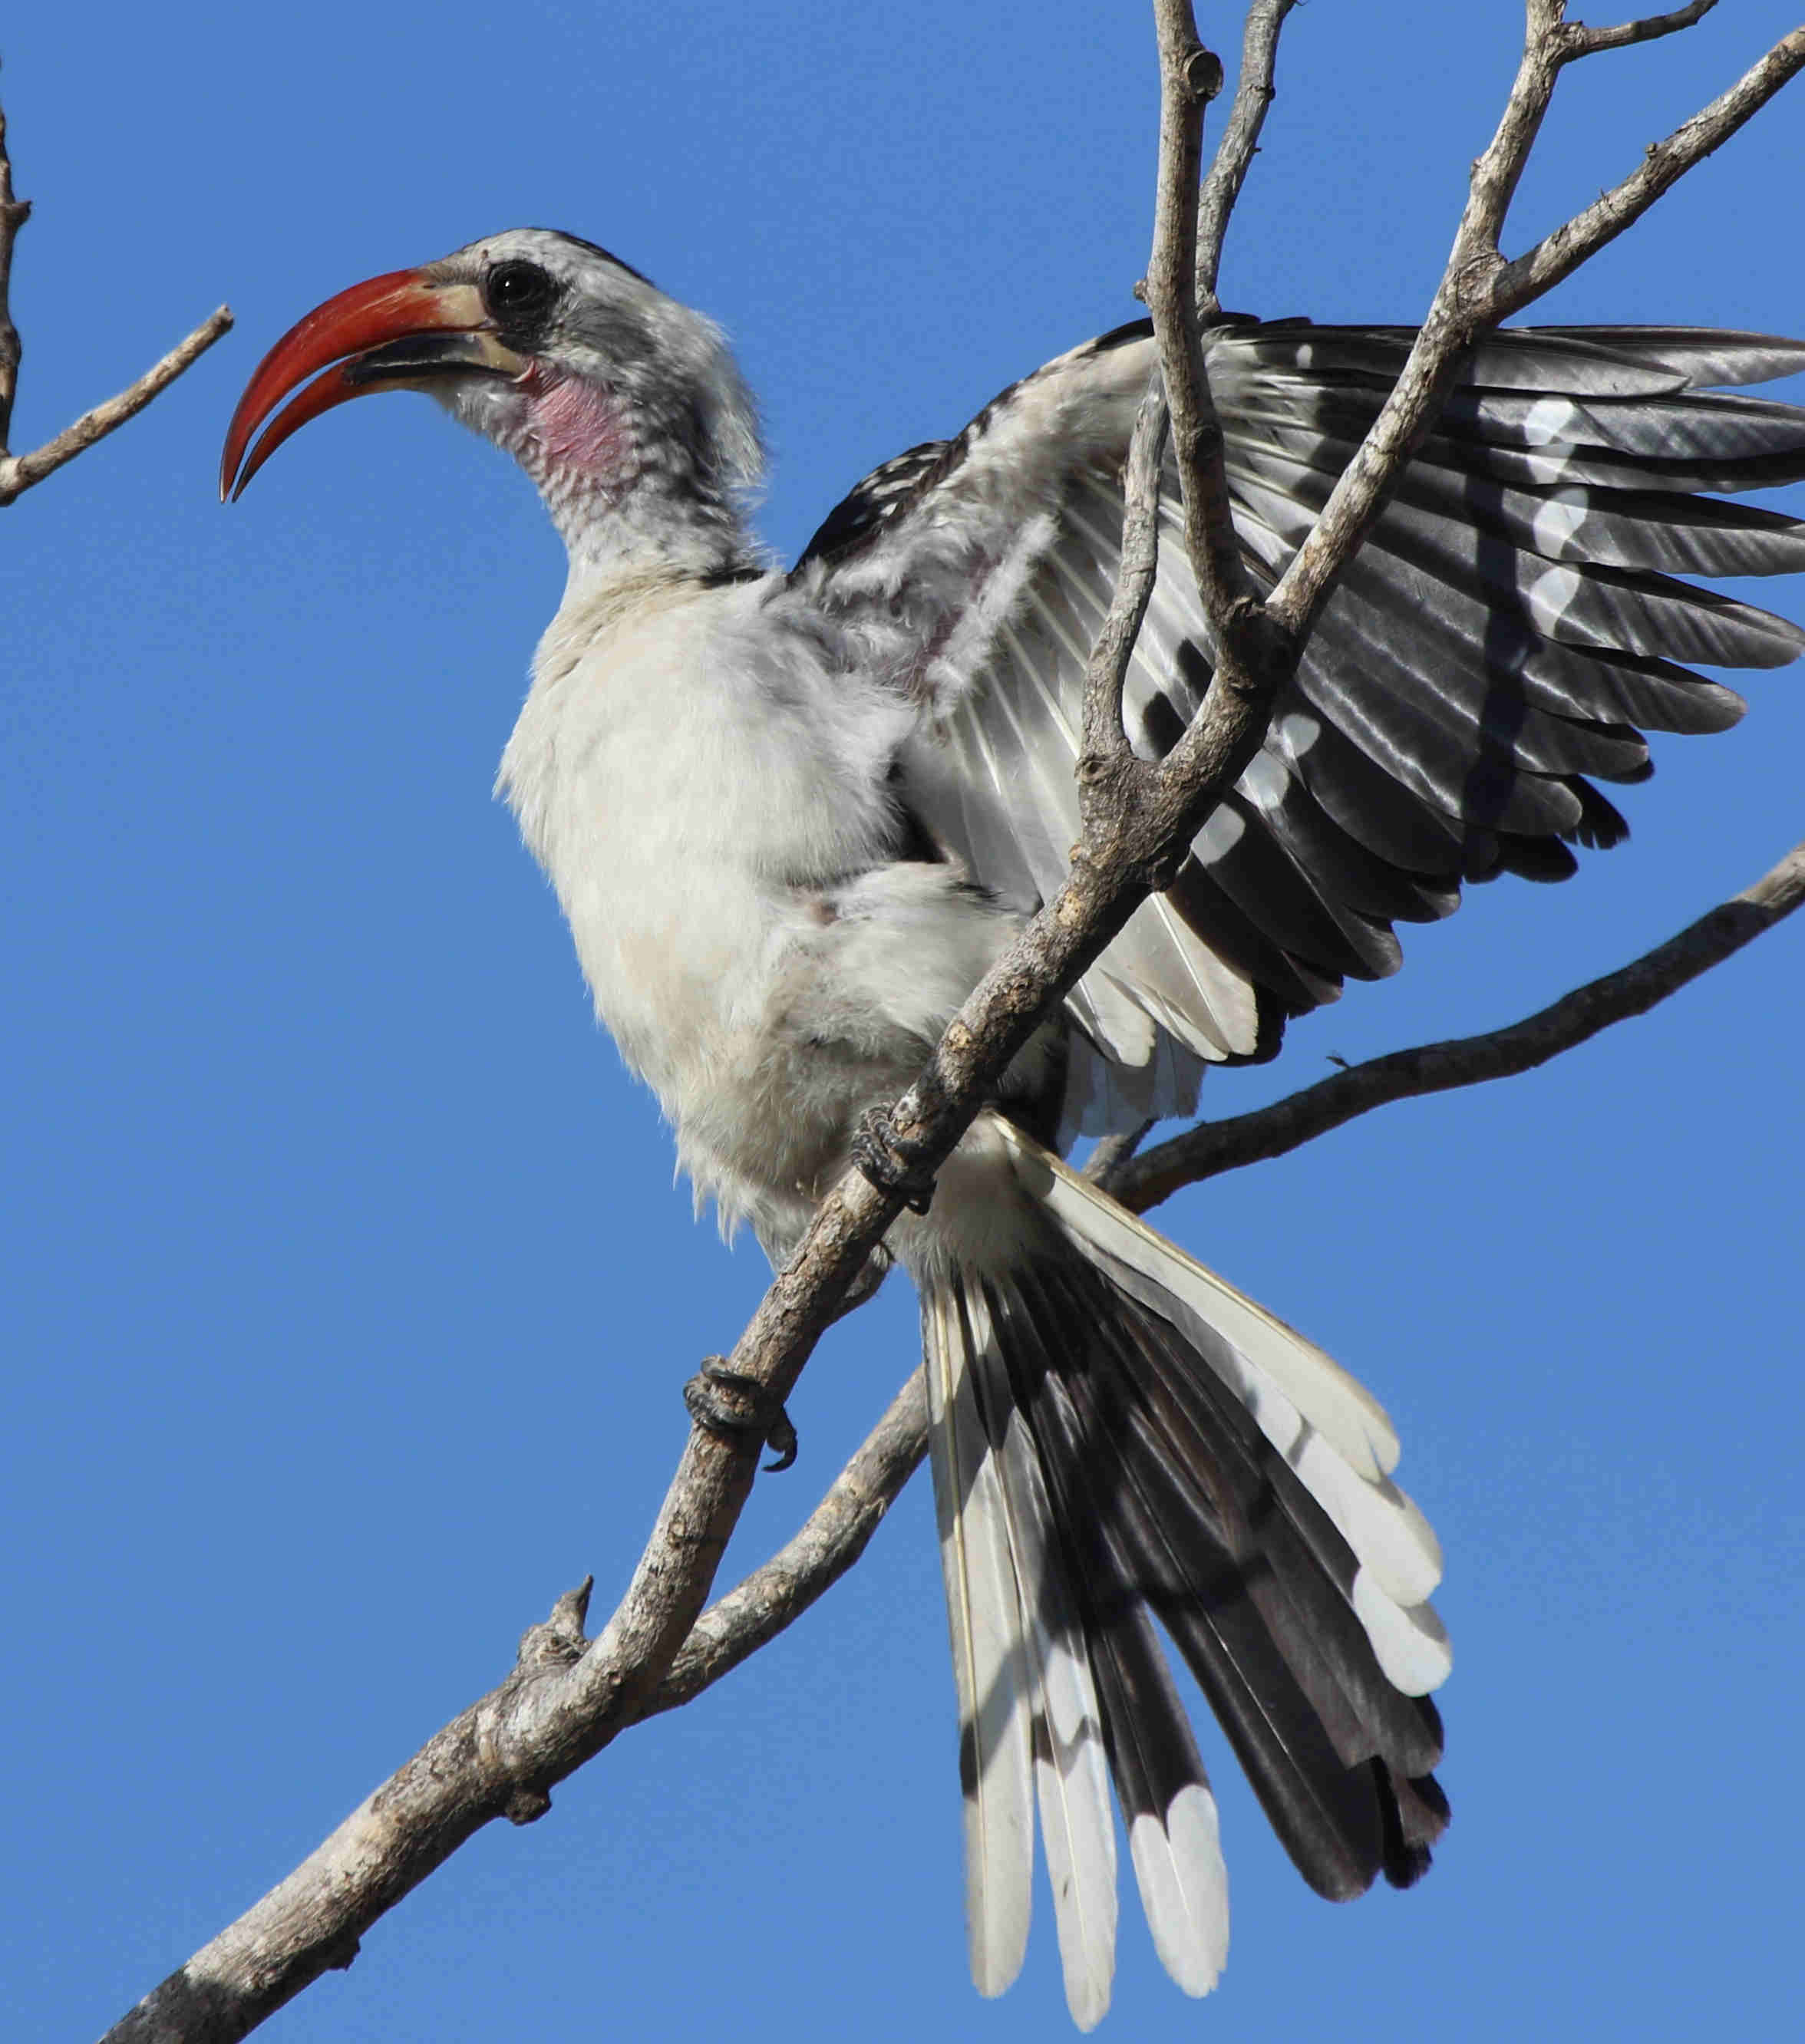 42 western red billed hornbill tockus kempi c%c3%a1lao de pico rojo occidental 3